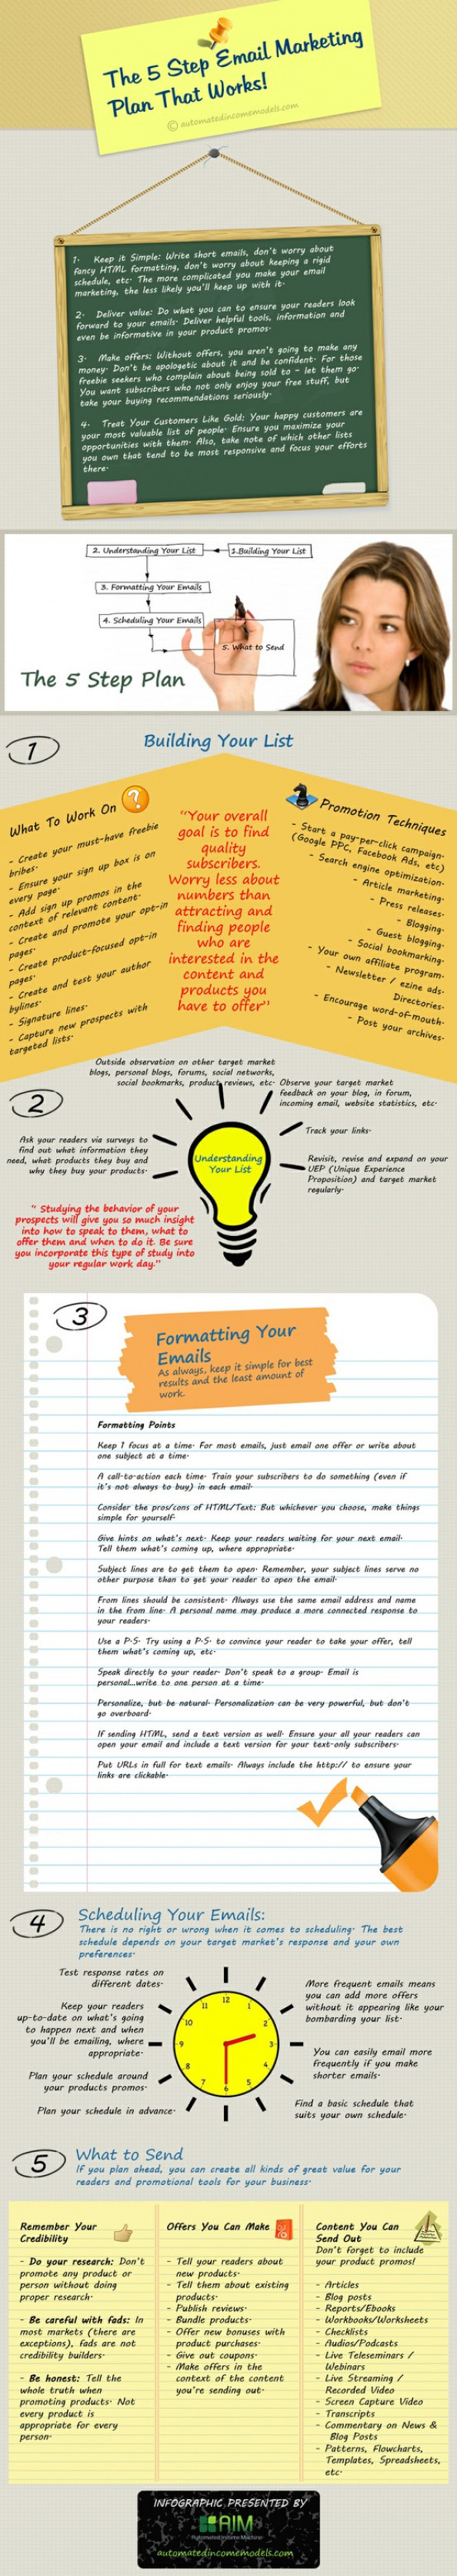 5 Surefire Steps to Success Infographic